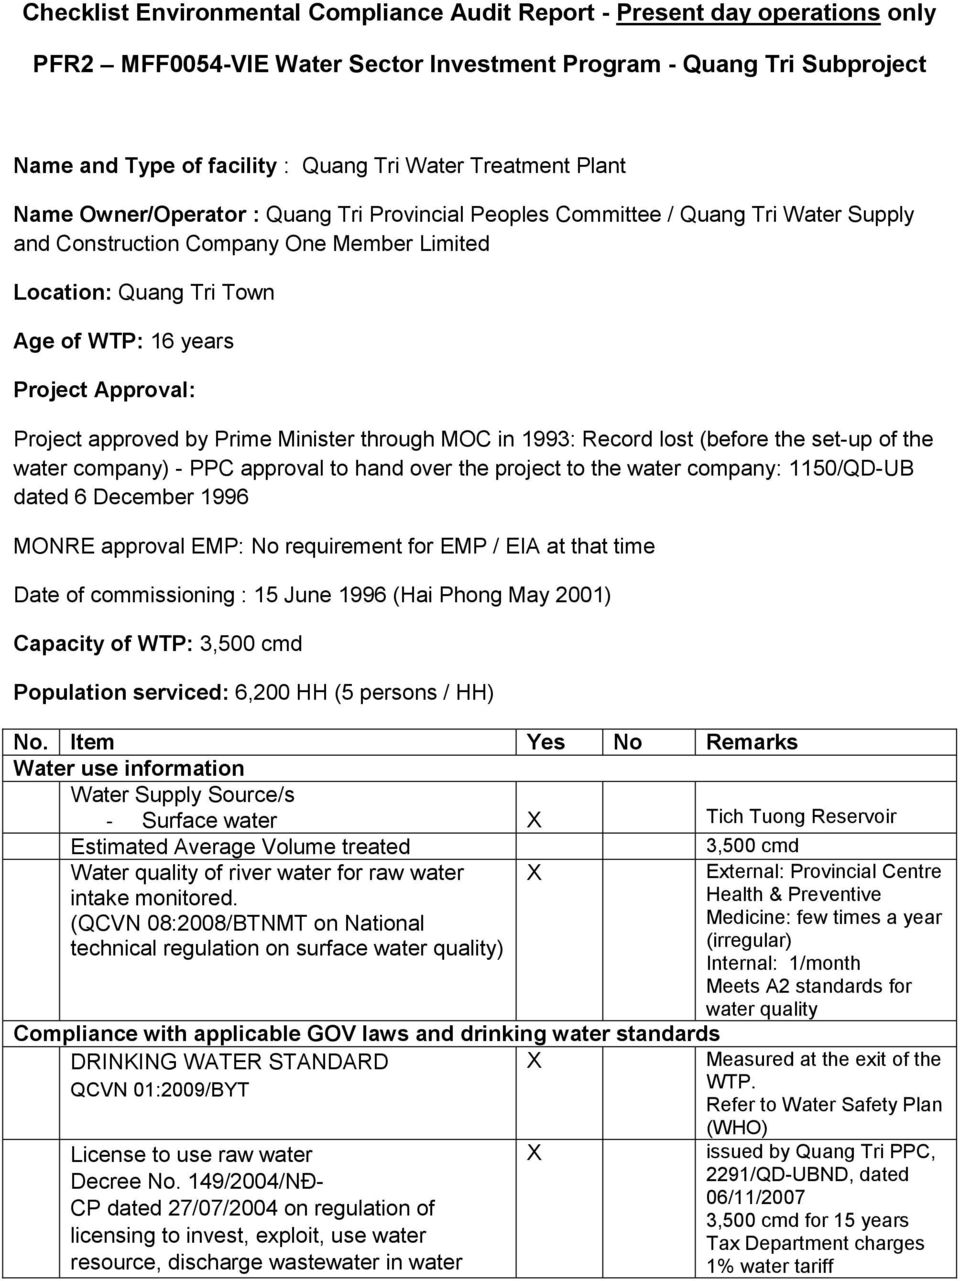 Approval: Project approved by Prime Minister through MOC in 1993: Record lost (before the set-up of the water company) - PPC approval to hand over the project to the water company: 1150/QD-UB dated 6